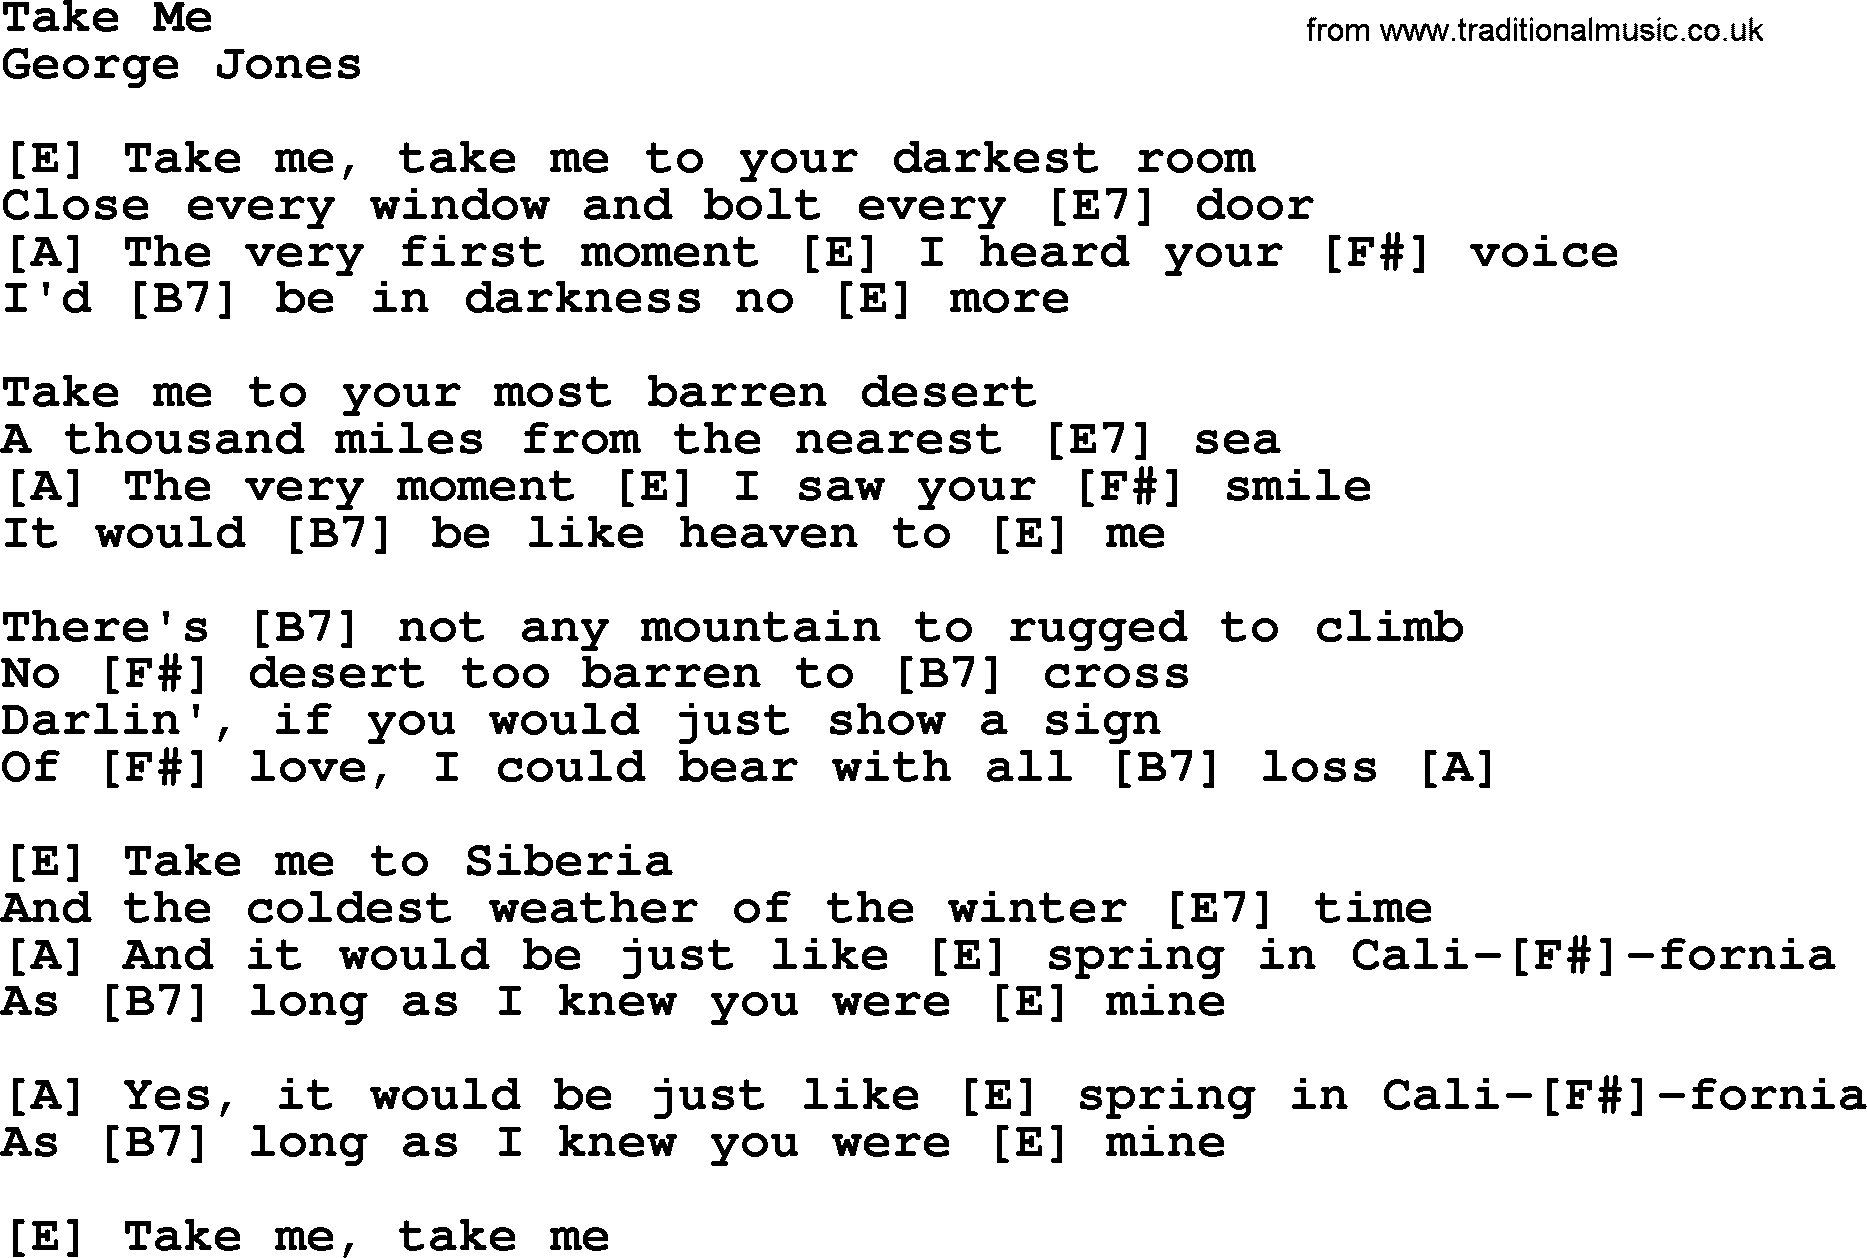 Take me by george jones counrty song lyrics and chords george jones song take me lyrics and chords hexwebz Image collections